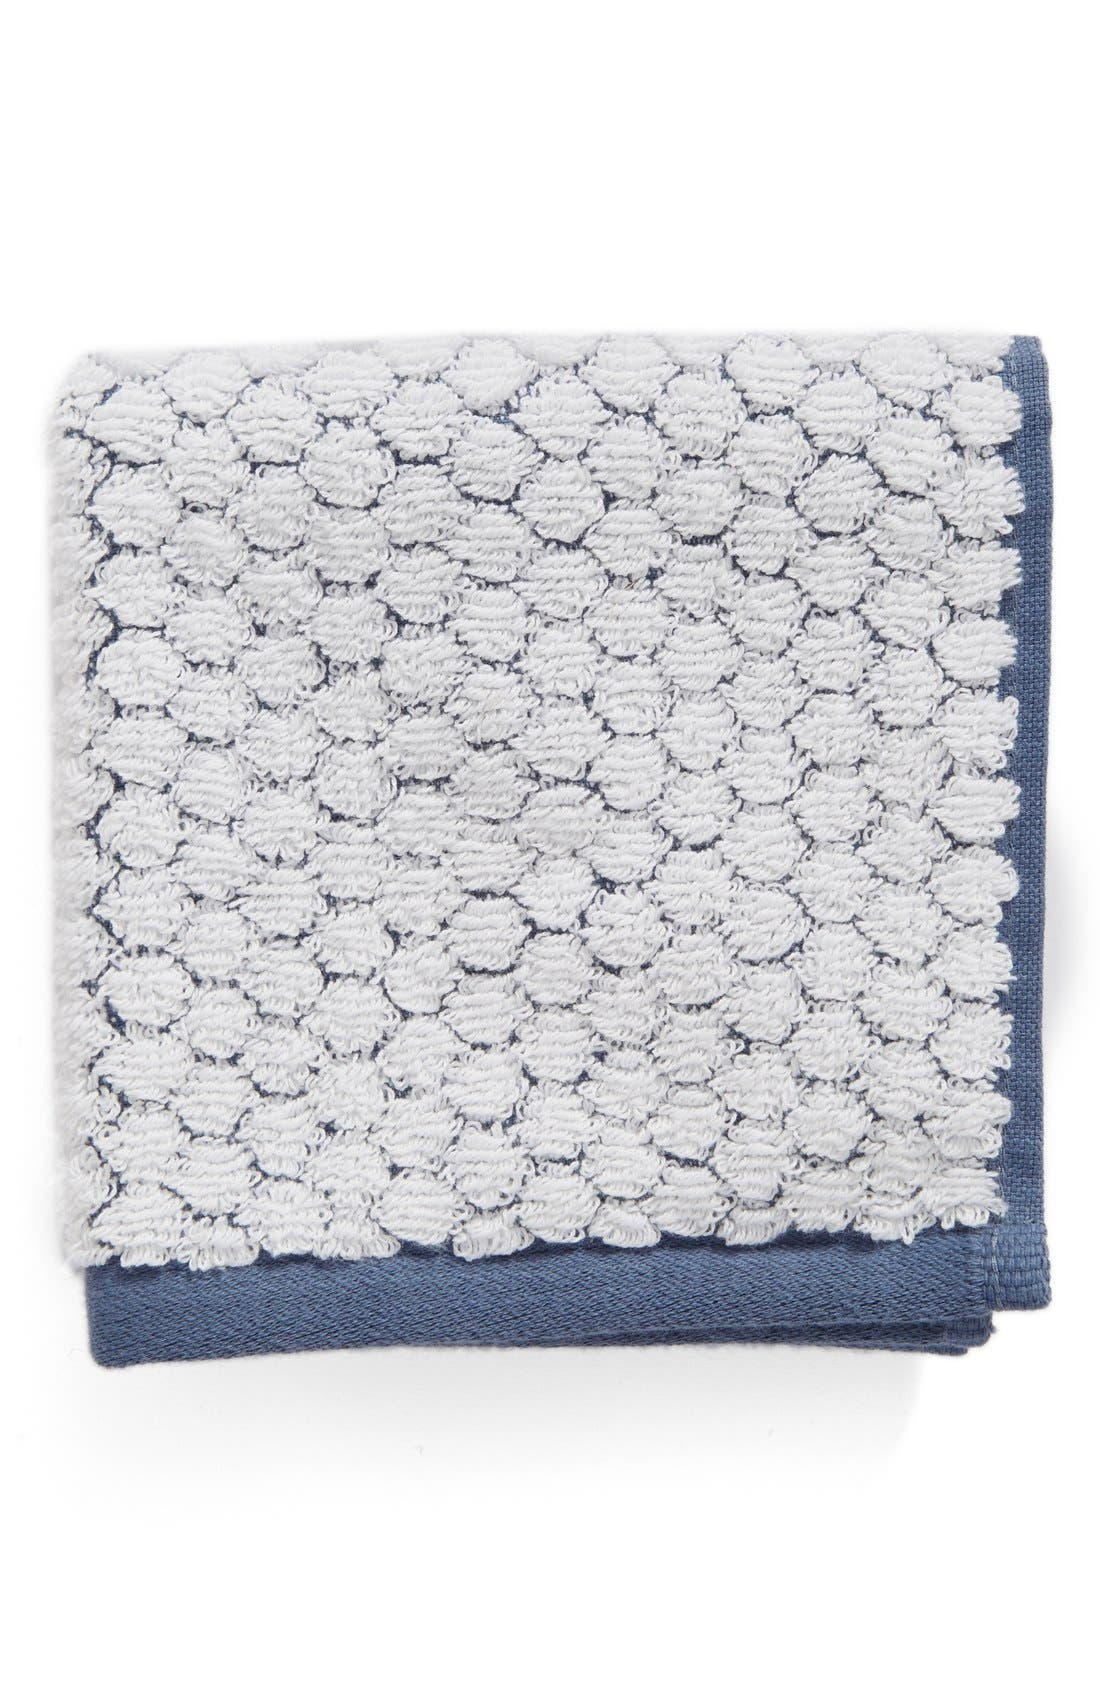 Nordstrom at Home Cobble Washcloth (2 for $17)